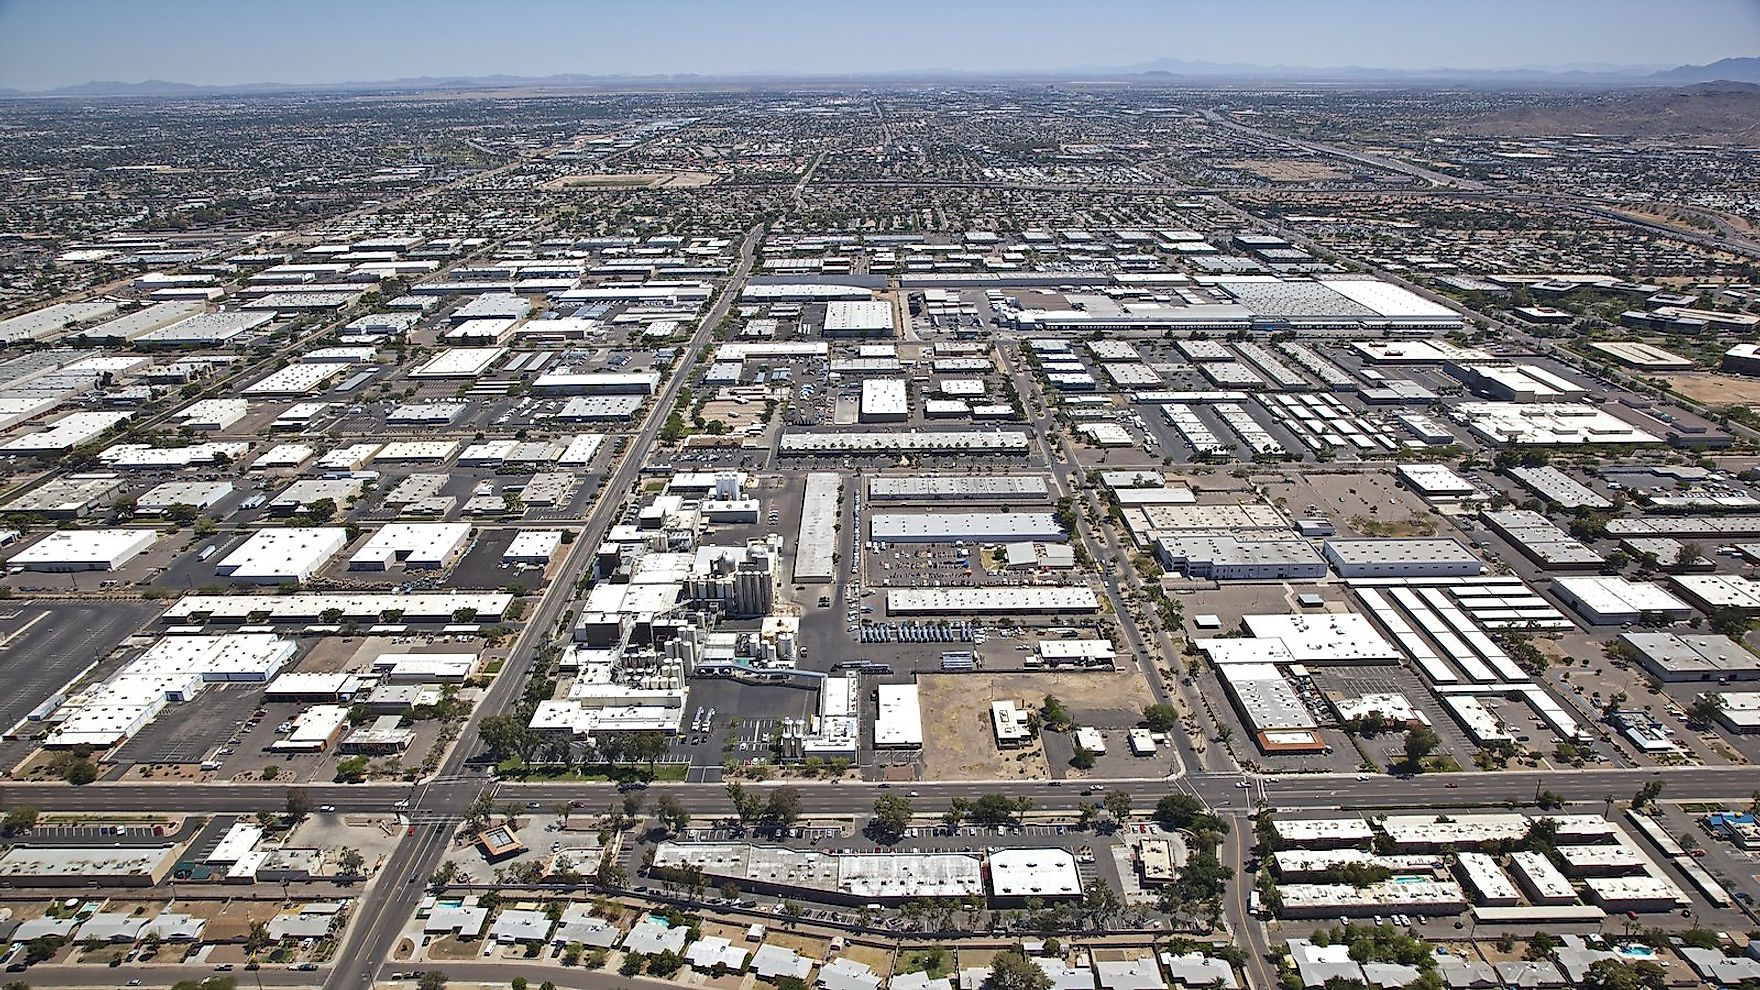 Aerial view of industrial area in Tempe, Arizona.